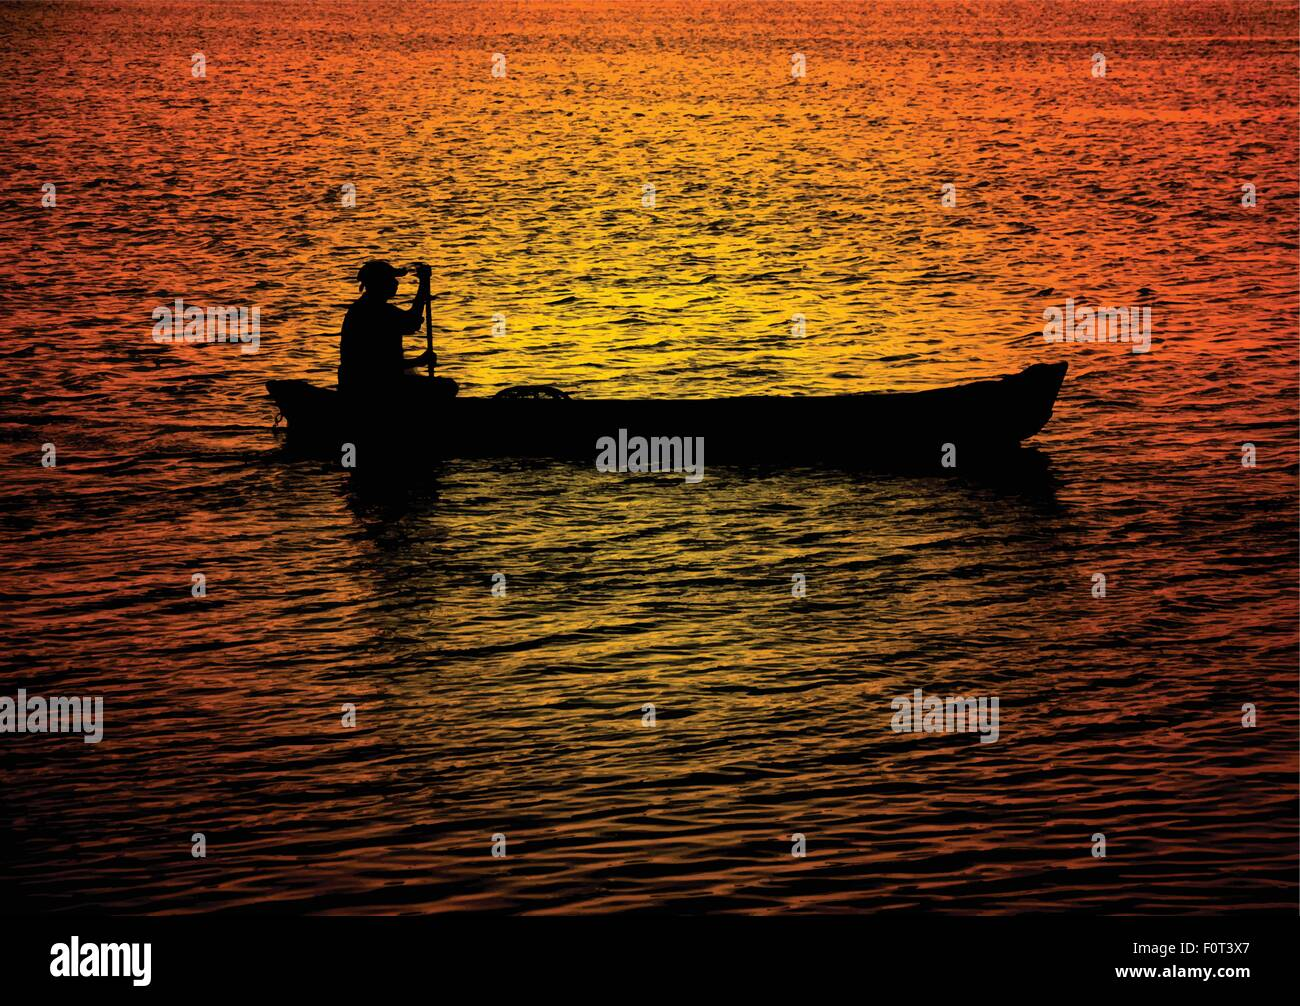 Silhouette of a lone man rowing a canoe in water reflecting dramatic sunset colors. - Stock Vector